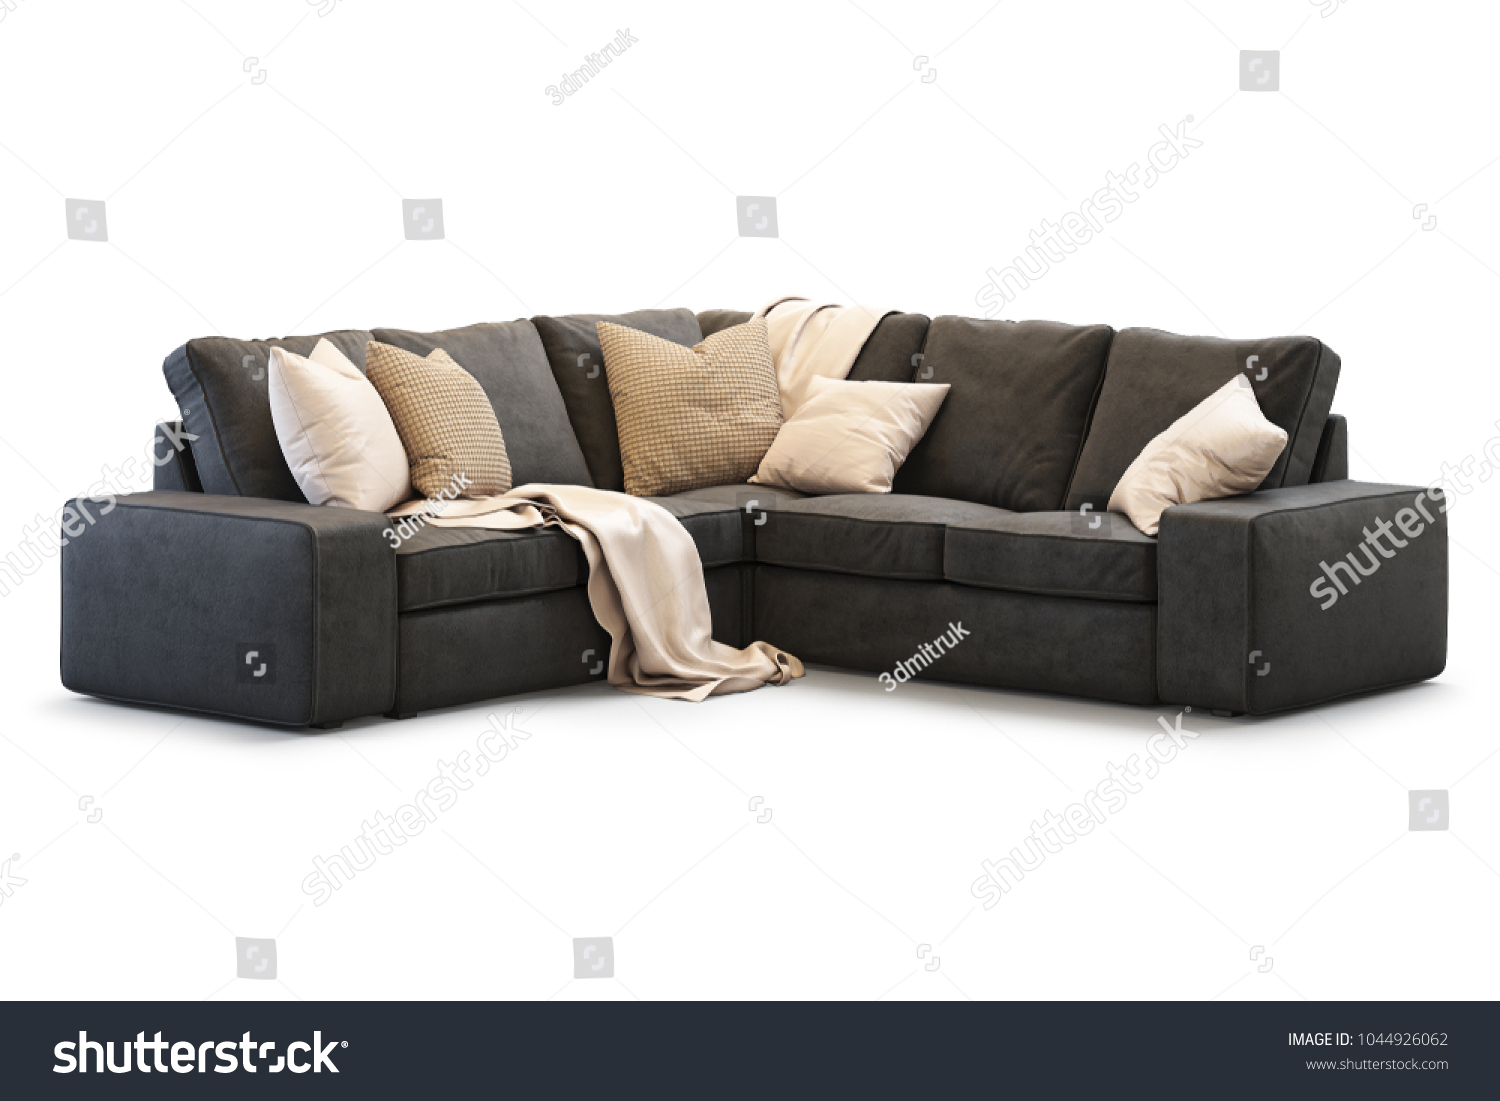 Kivik Sofa Leather Royalty Free Stock Illustration Of Modern Textile Ikea Kivik Sofa